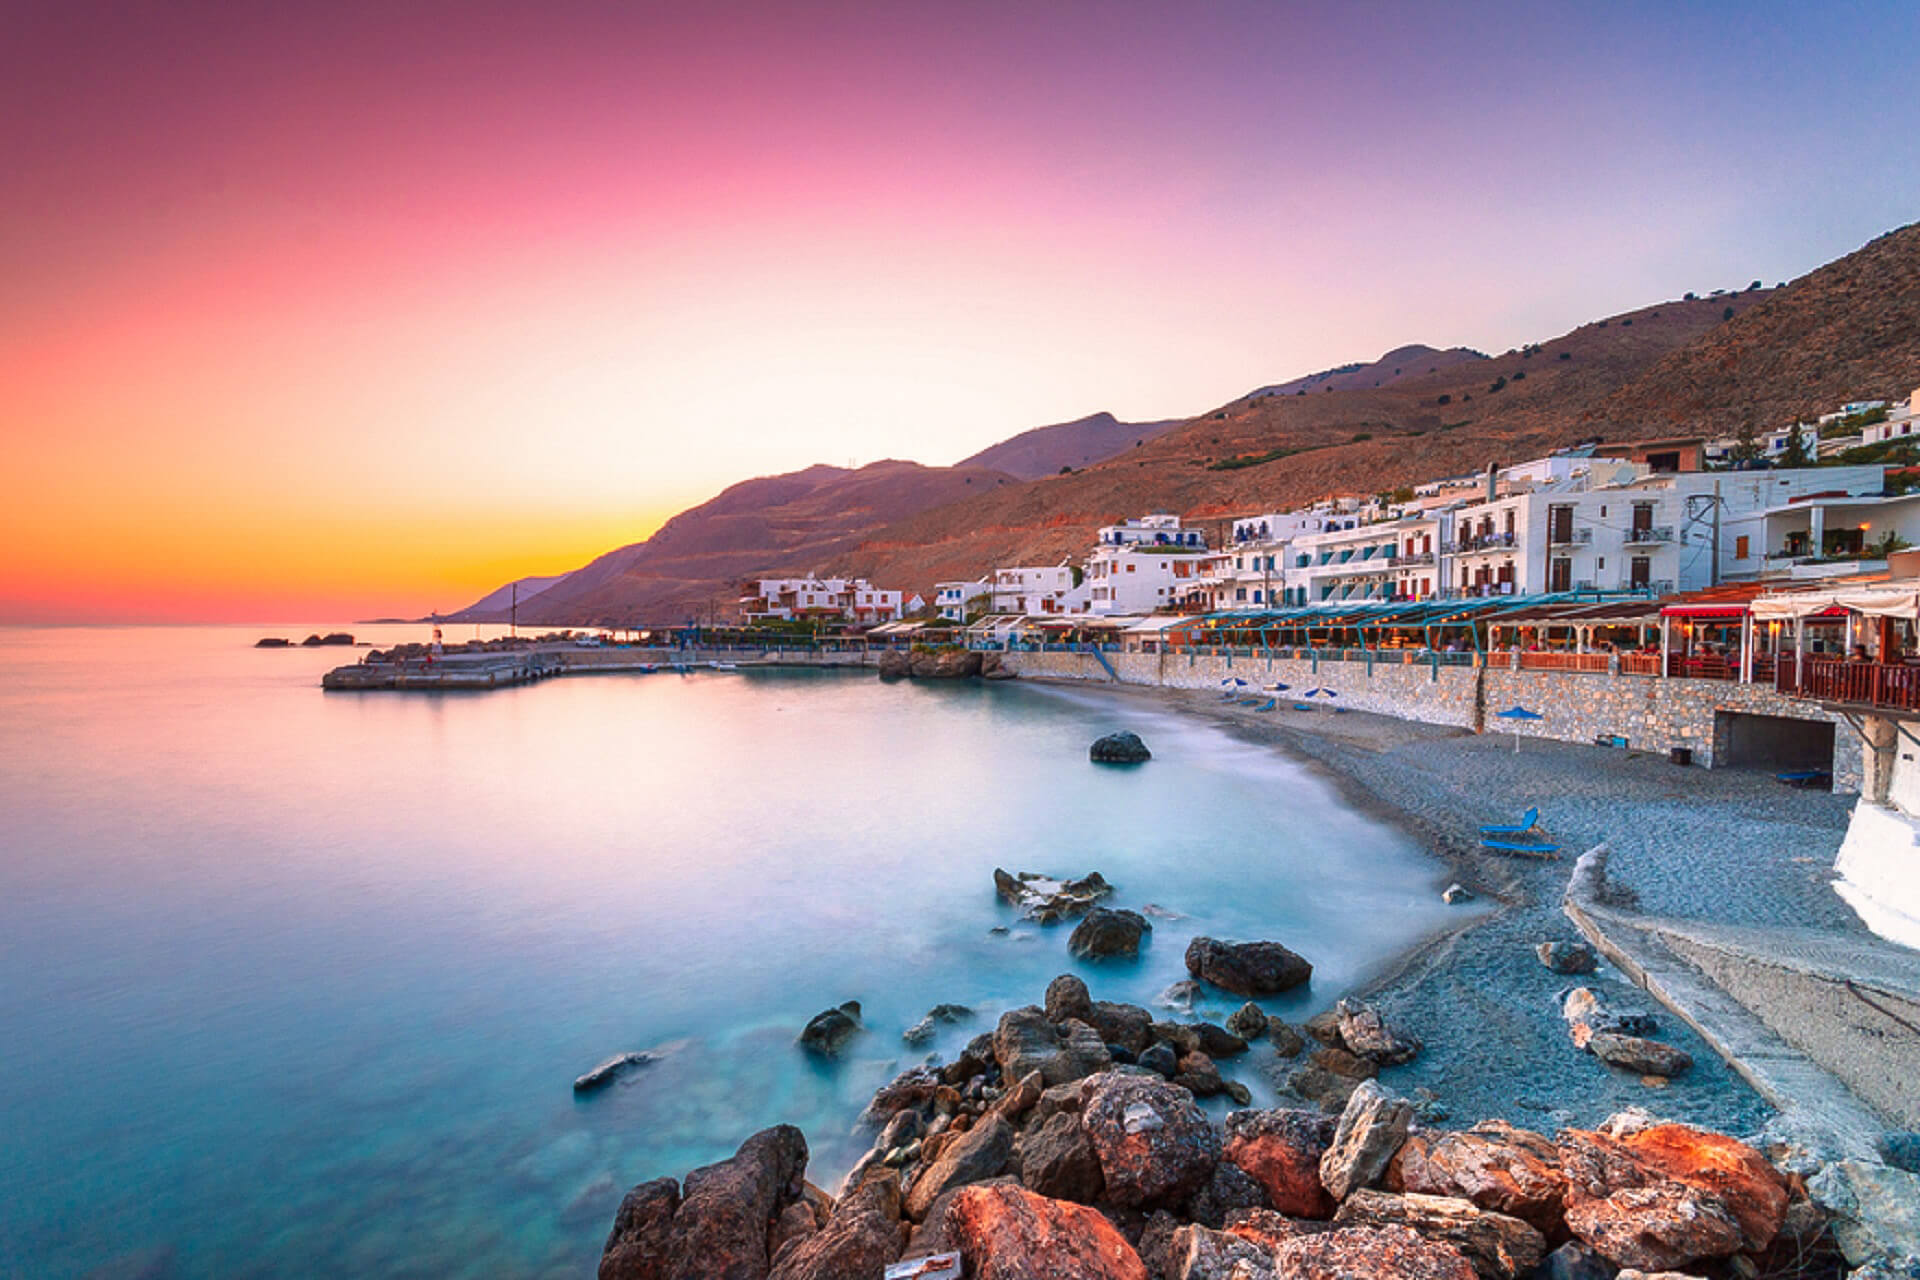 Crete - A Paradise For Hedonists